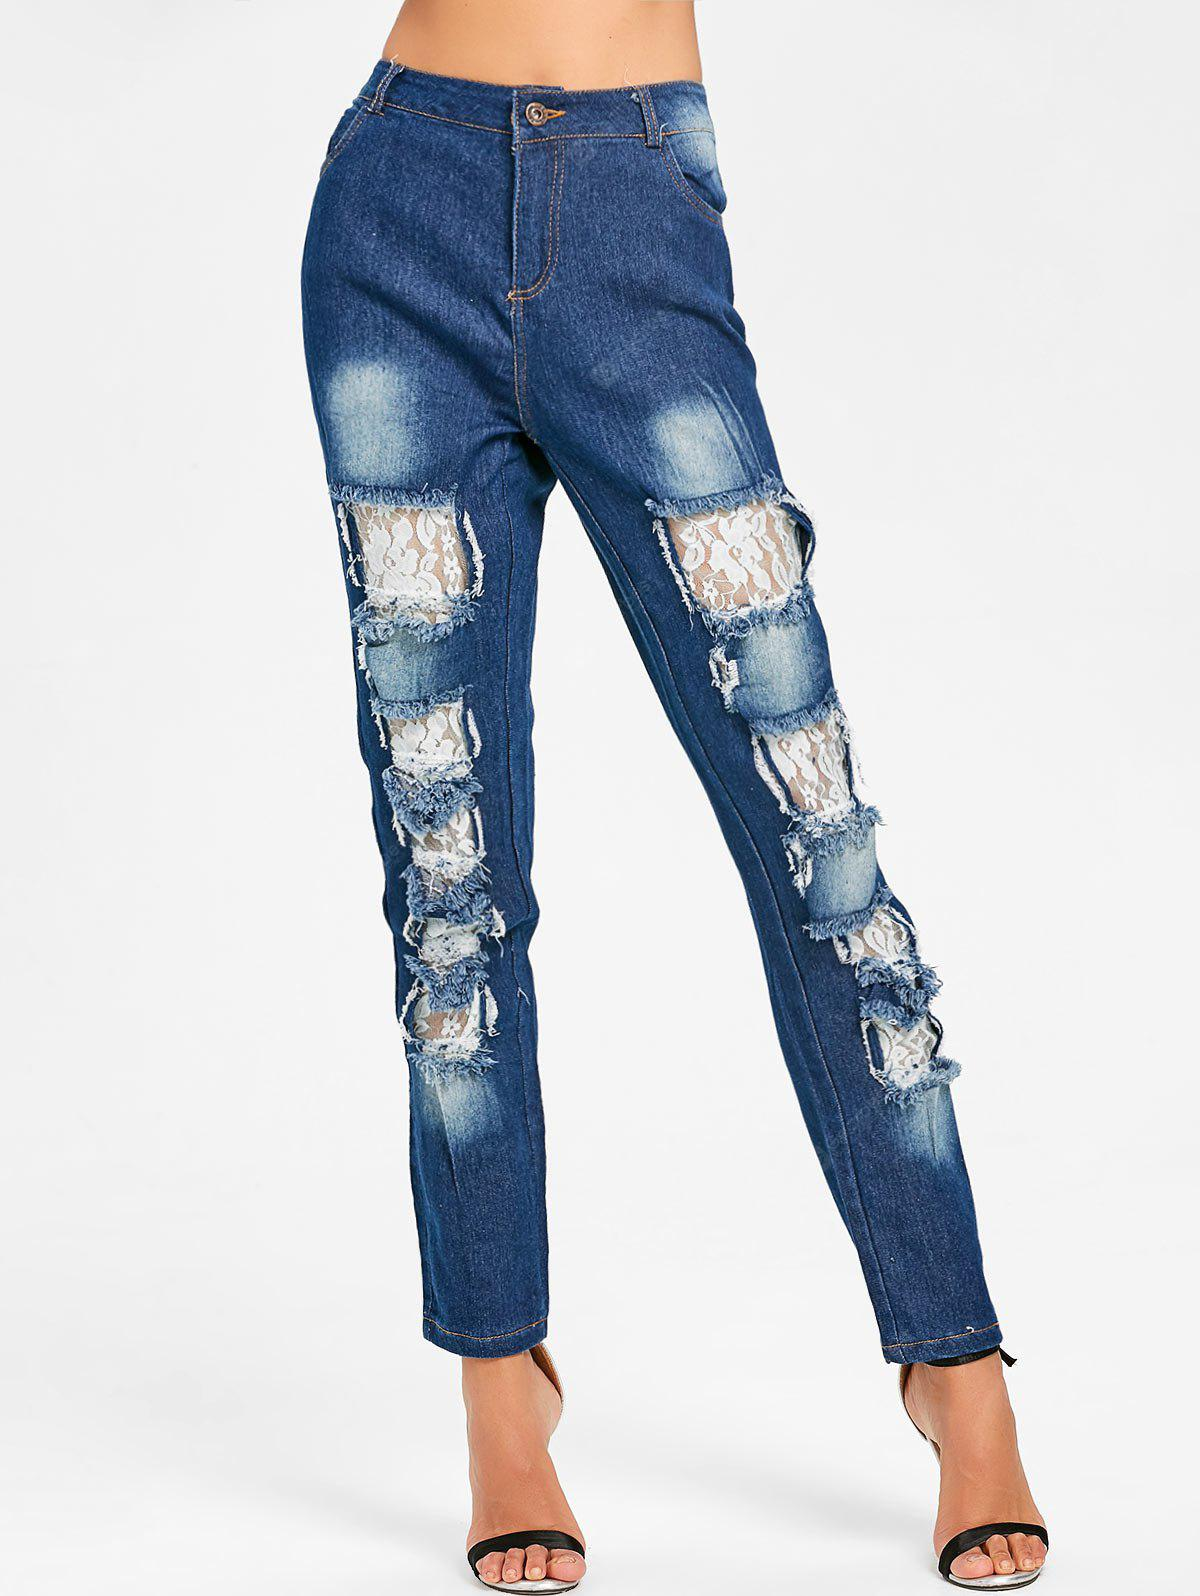 Lace Insert Distressed Skinny Jeans